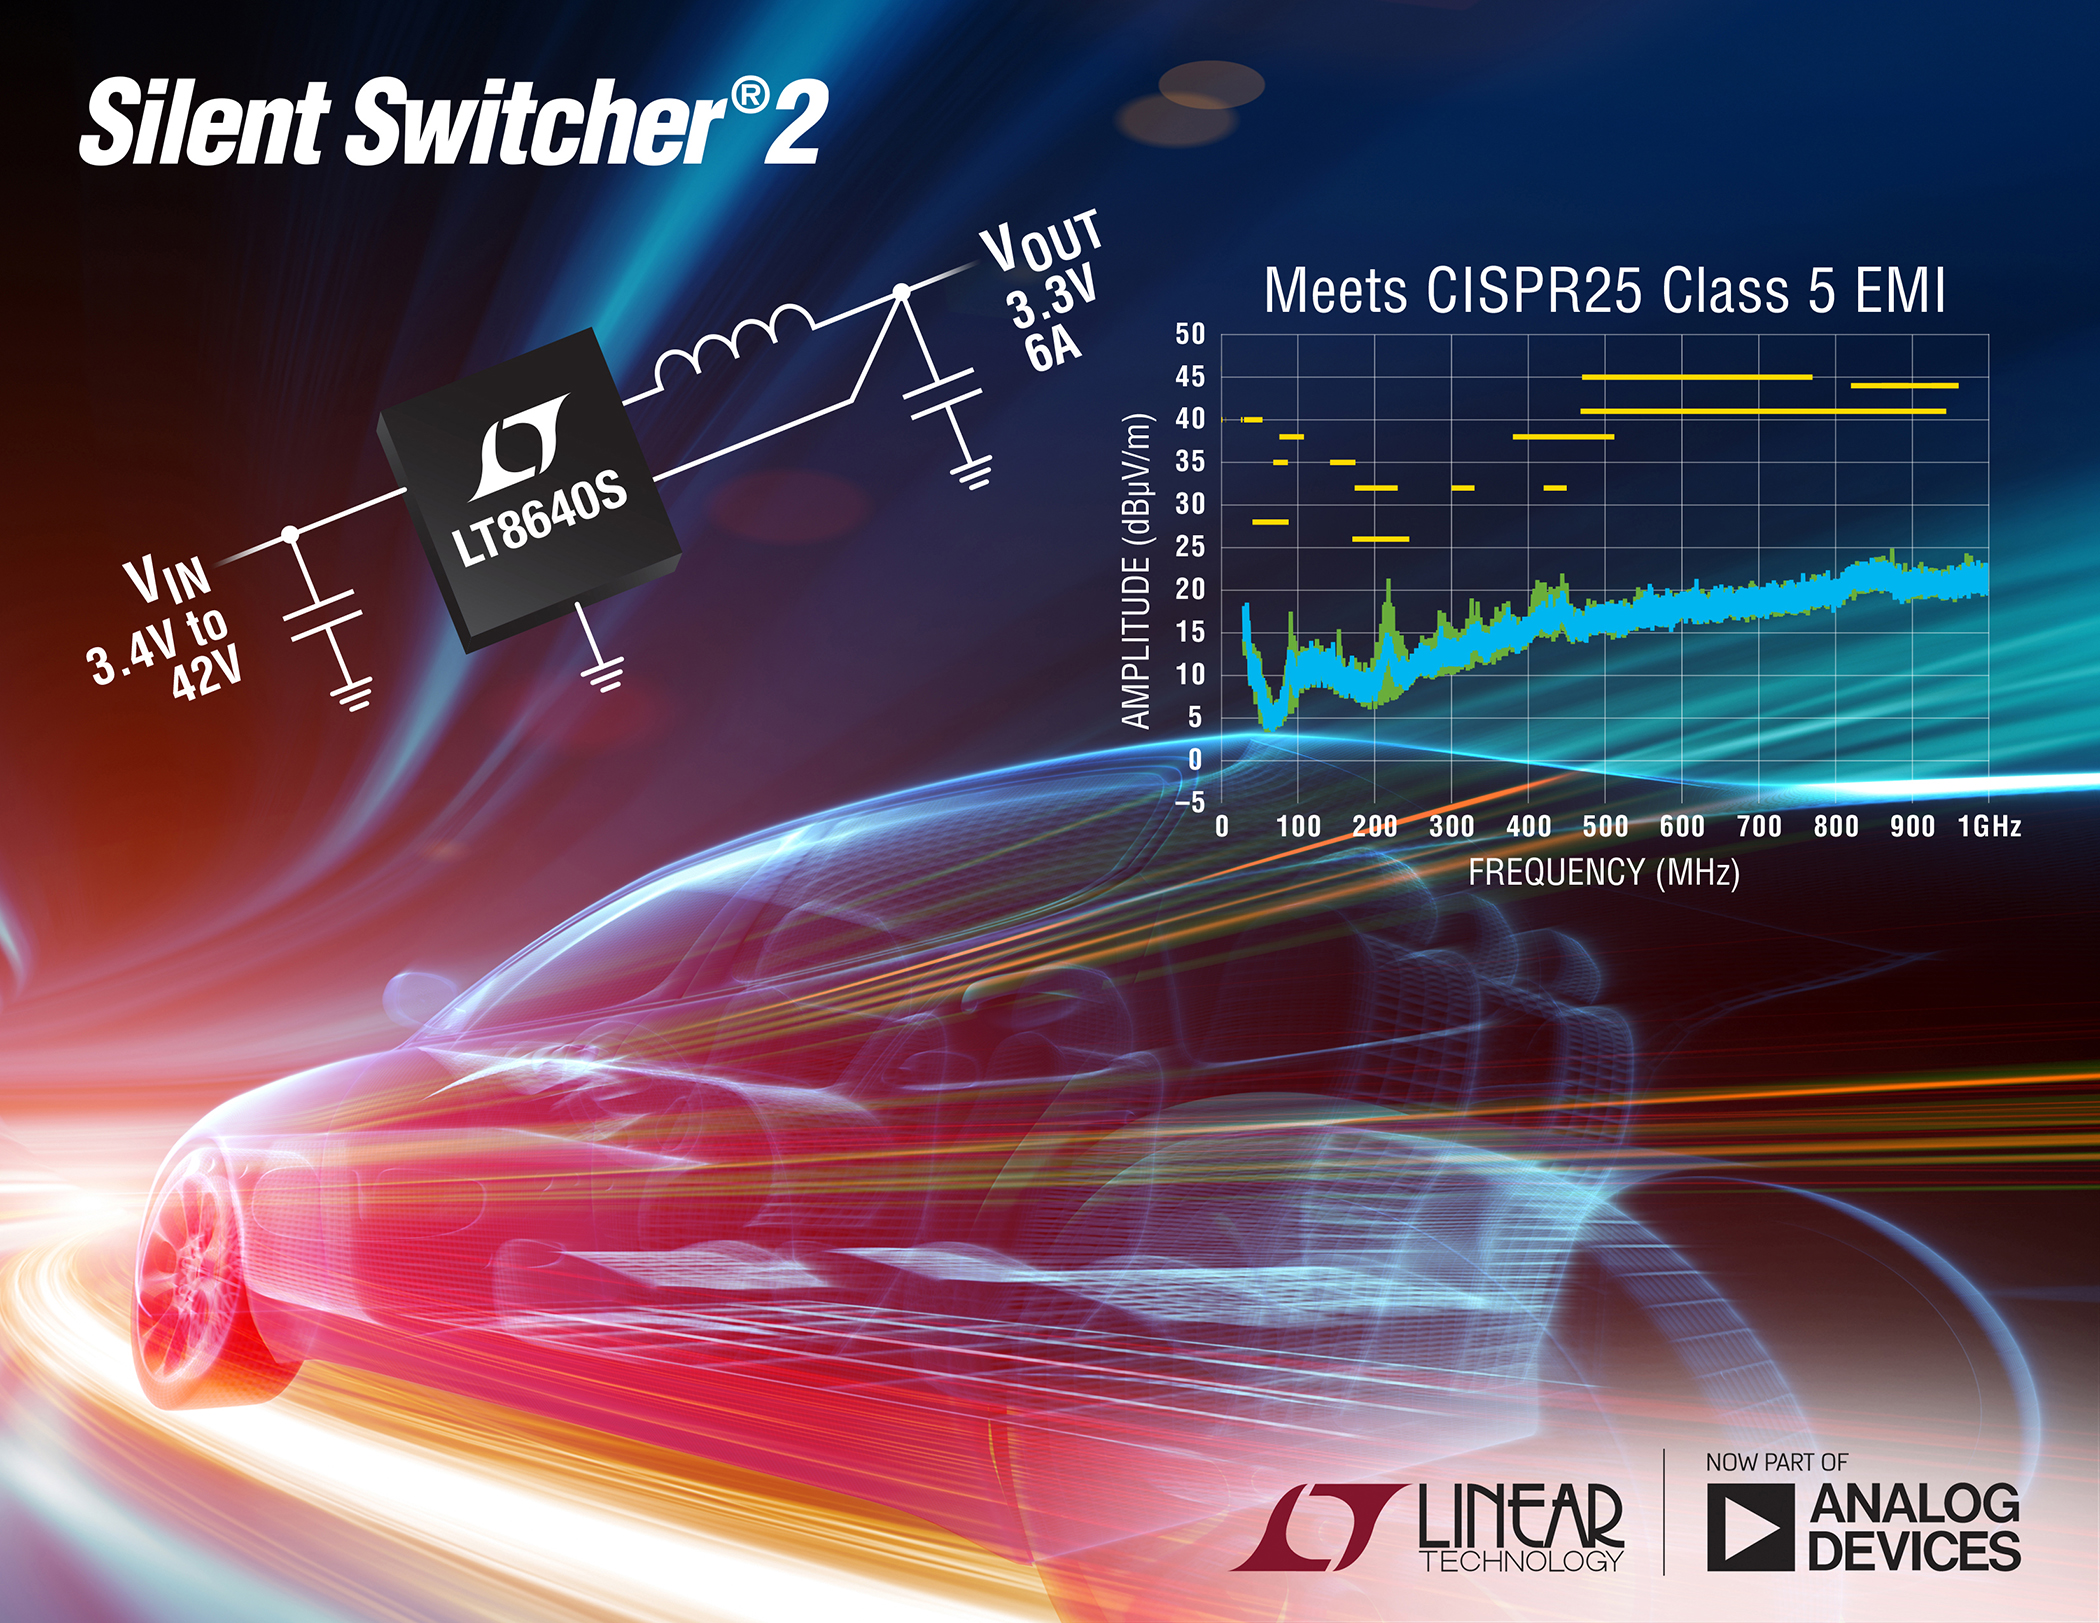 42V, 6A (IOUT), Synchronous Step-Down Silent Switcher 2 Delivers 95% Efficiency at 2MHz & Ultralow EMI/EMC Emissions